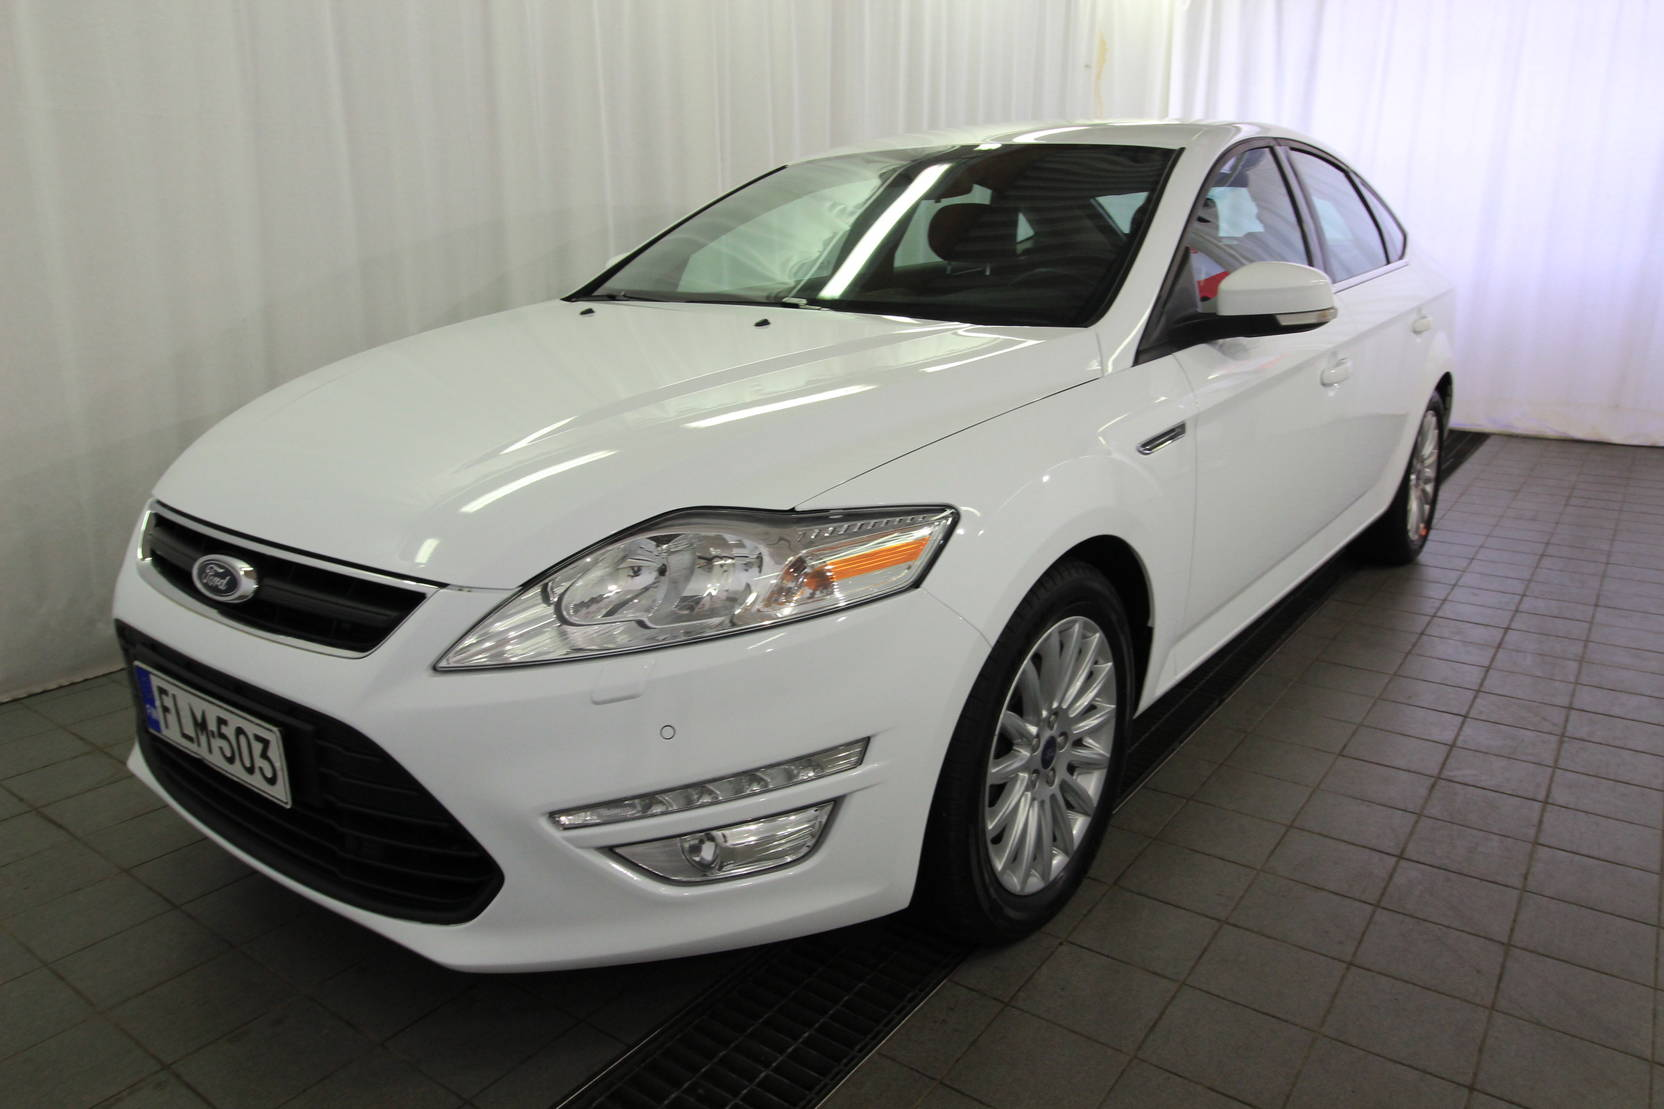 Ford Mondeo 1.6 Tdci 115hv Edition Econ. S/s 5-Ov detail1